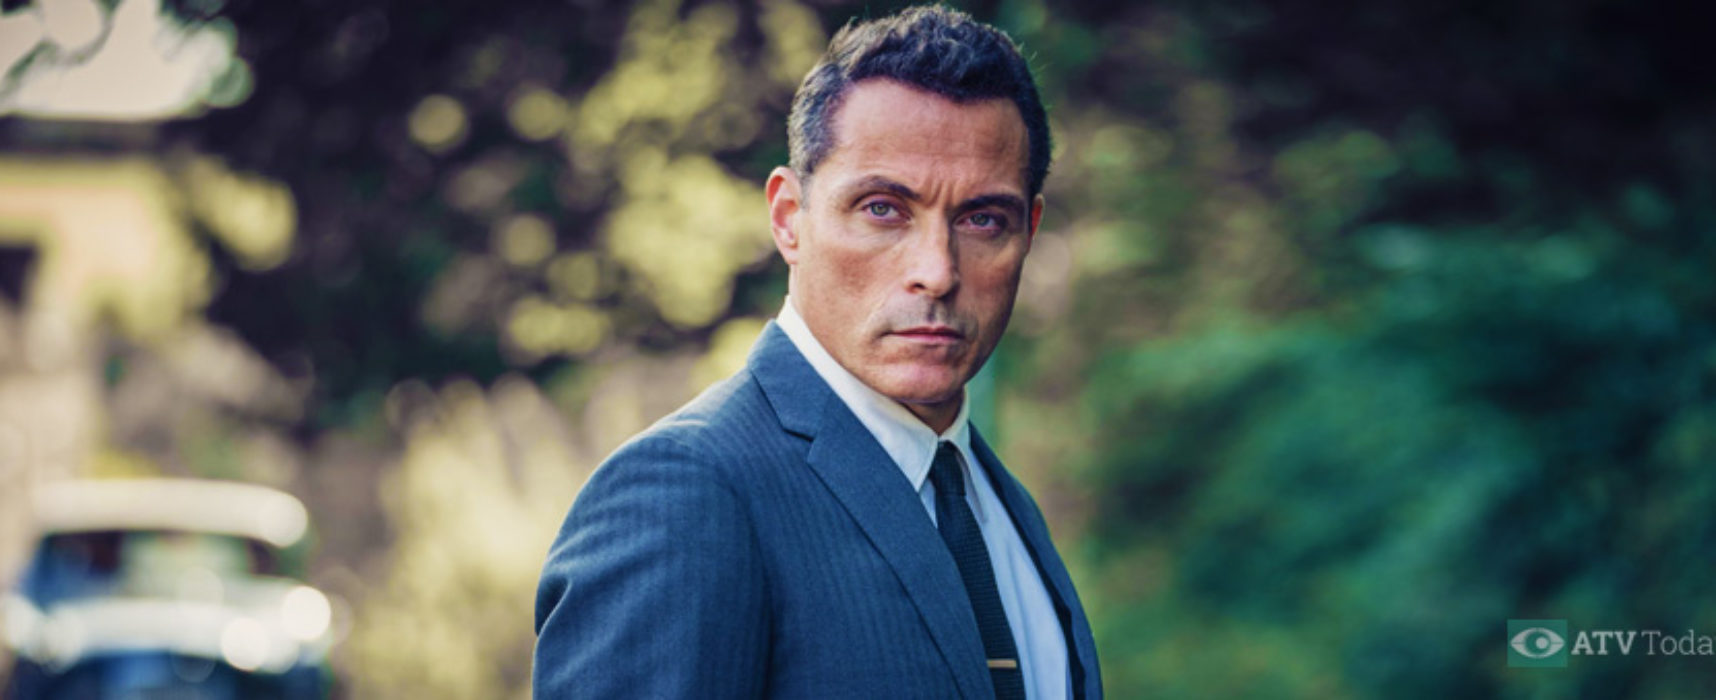 Rufus Sewell stars in The Pale Horse